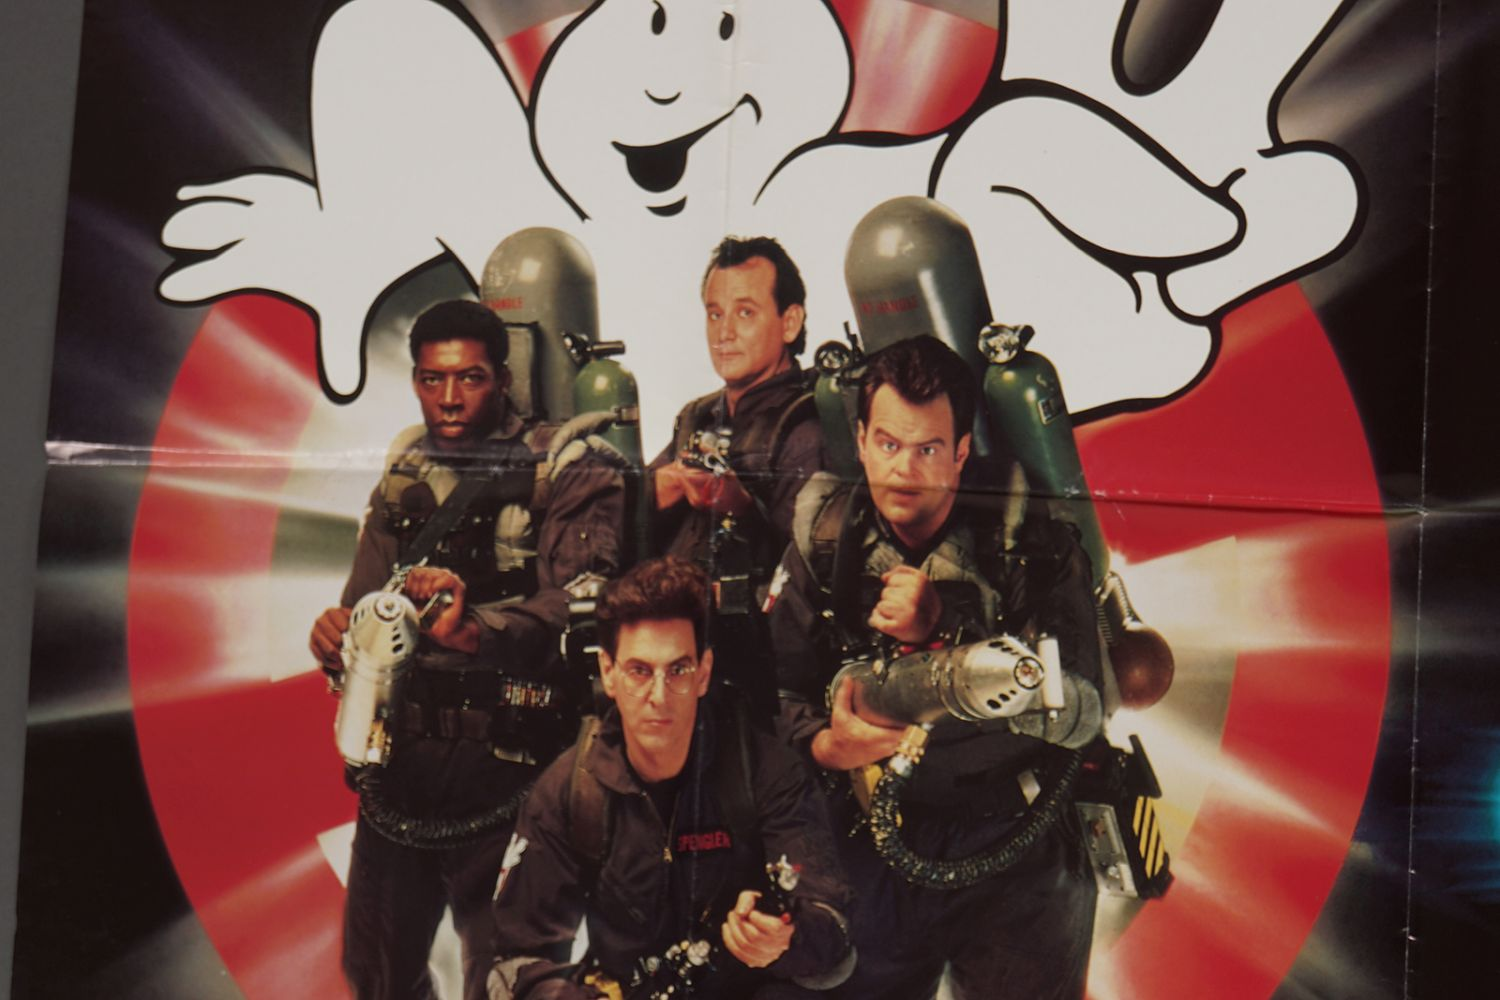 GHOST BUSTERS II - Image 2 of 3